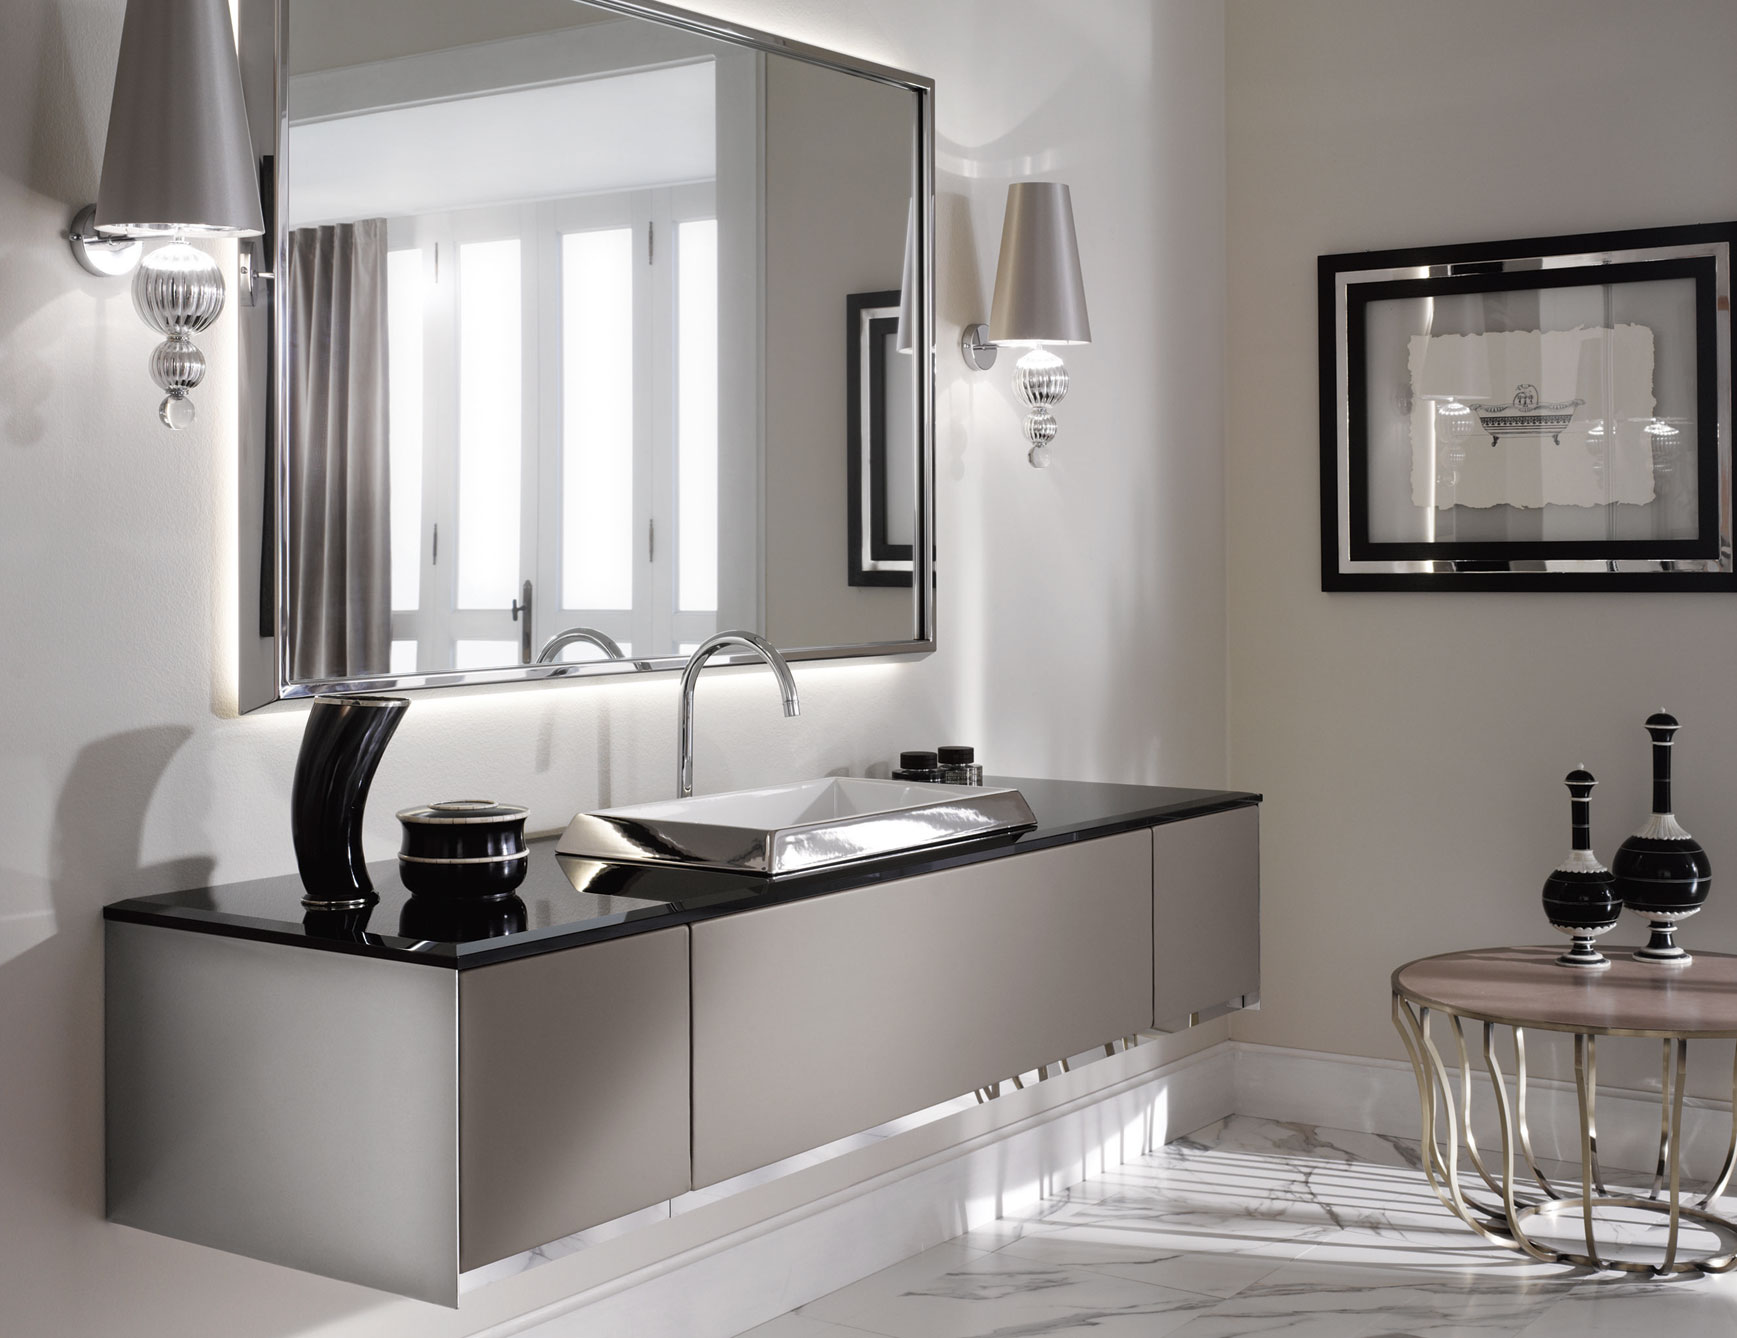 View In Gallery Luxury Bathroom Vanity From Nella Vetrina